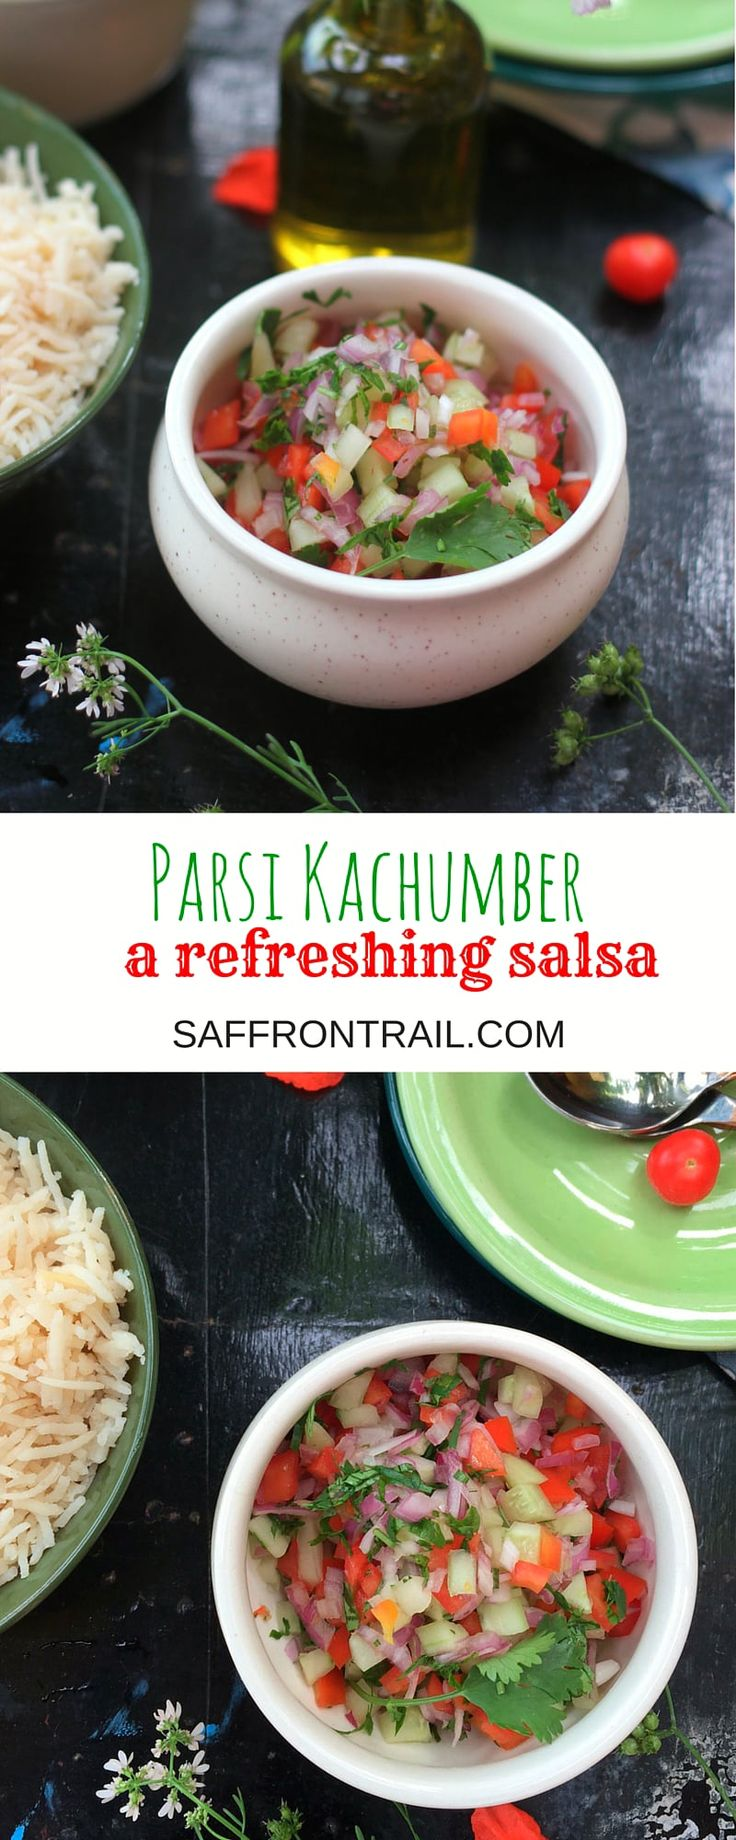 Kachumber is a quintessentially Parsi salad or salsa that is served along with a main dish like dhansak and rice. A super refreshing condiment that goes well with any Indian meal